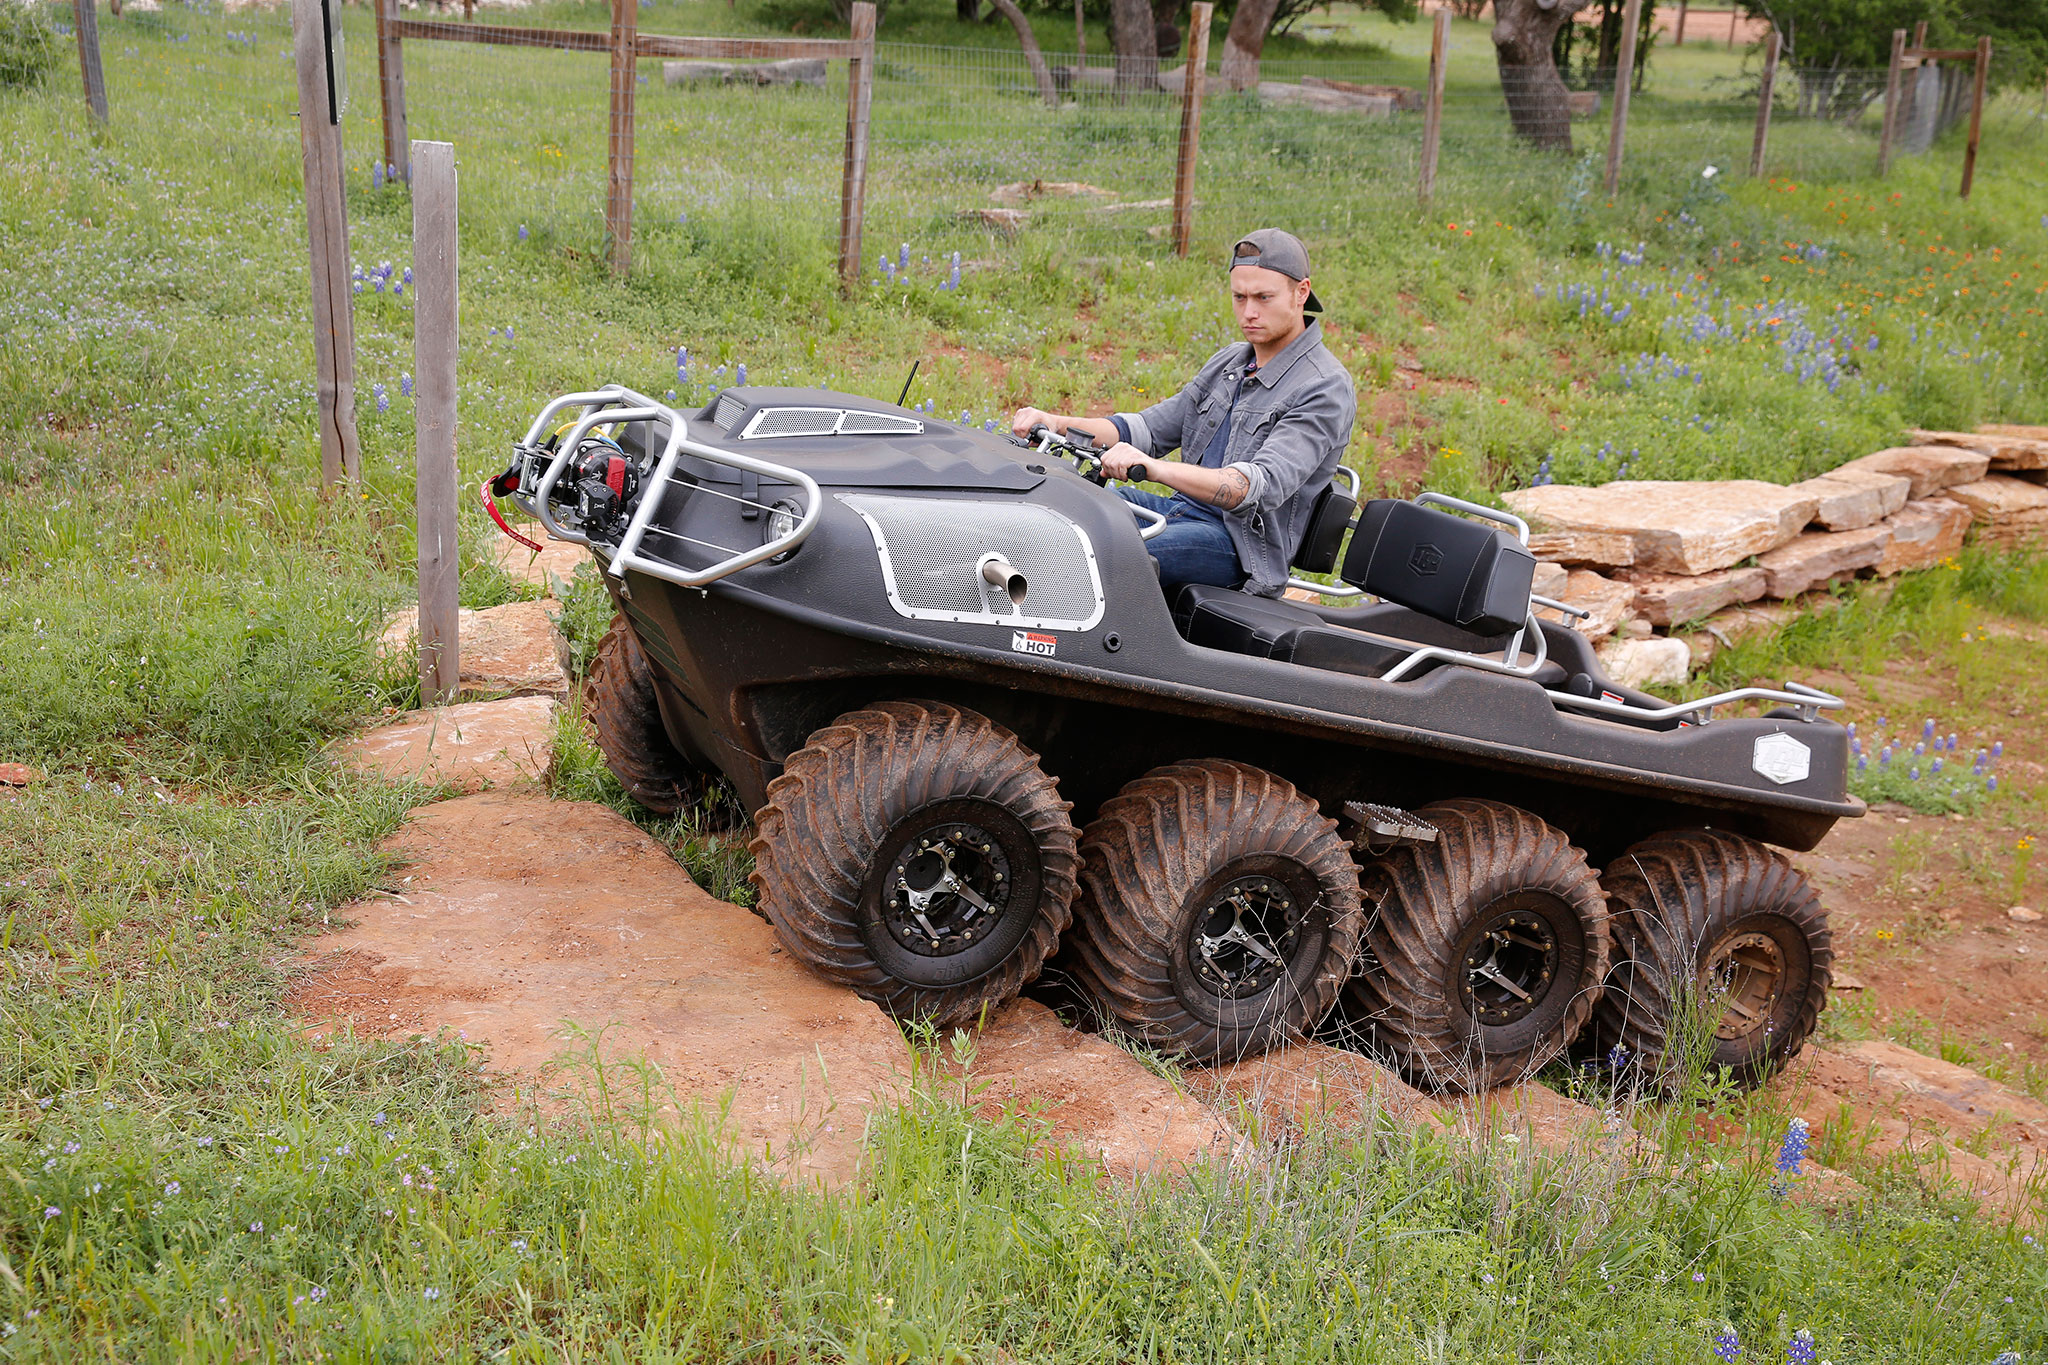 2016 Argo 8x8 Amphibious Atv Review